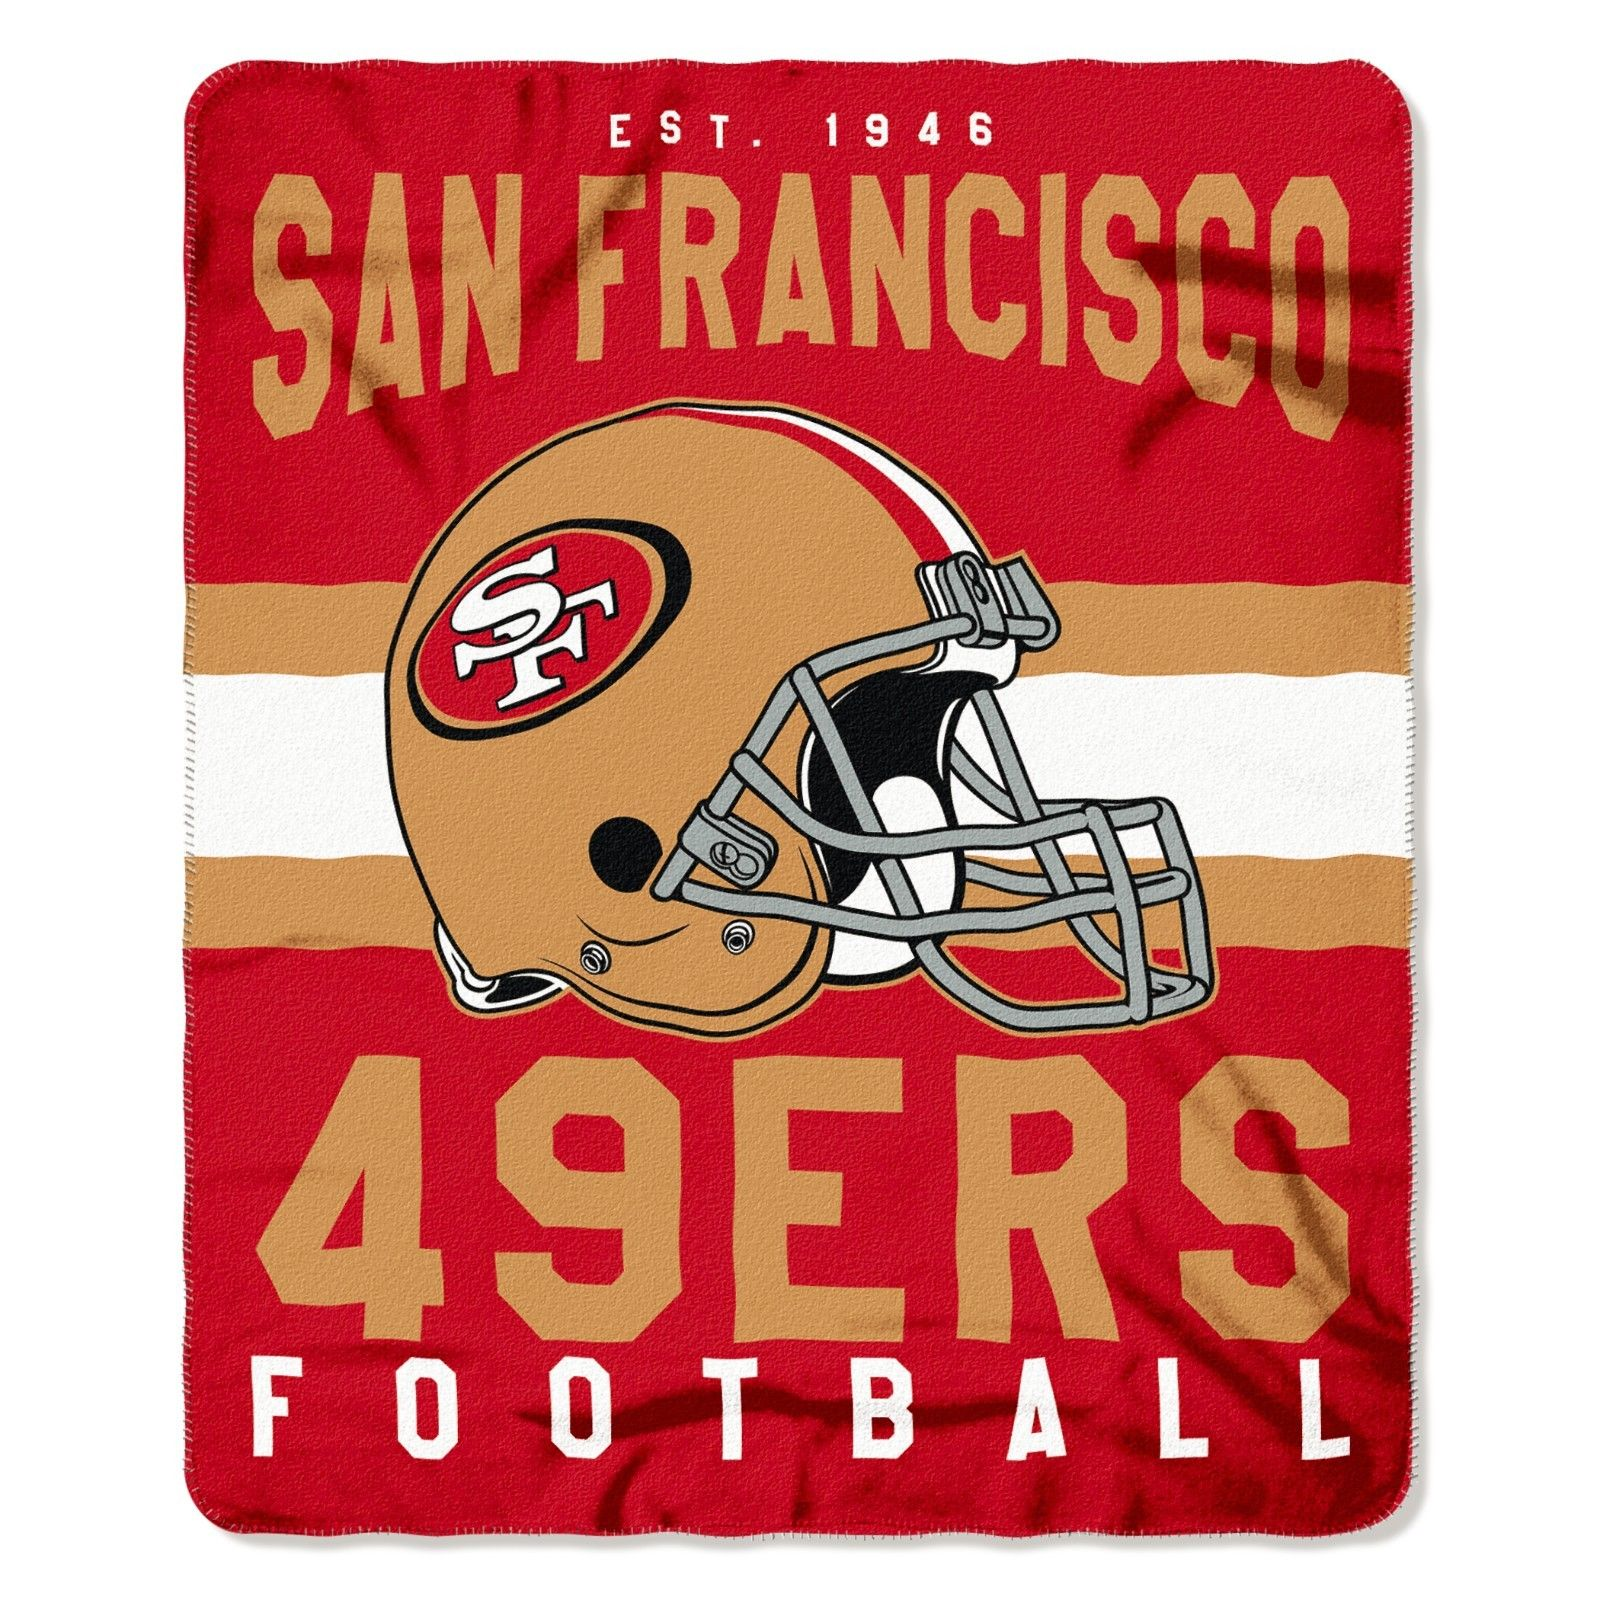 """NFL San Francisco 49ers Singular 50-Inch by 60-Inch Printed fleece Throw Blanket, Red, 50-inches x 60"""""""